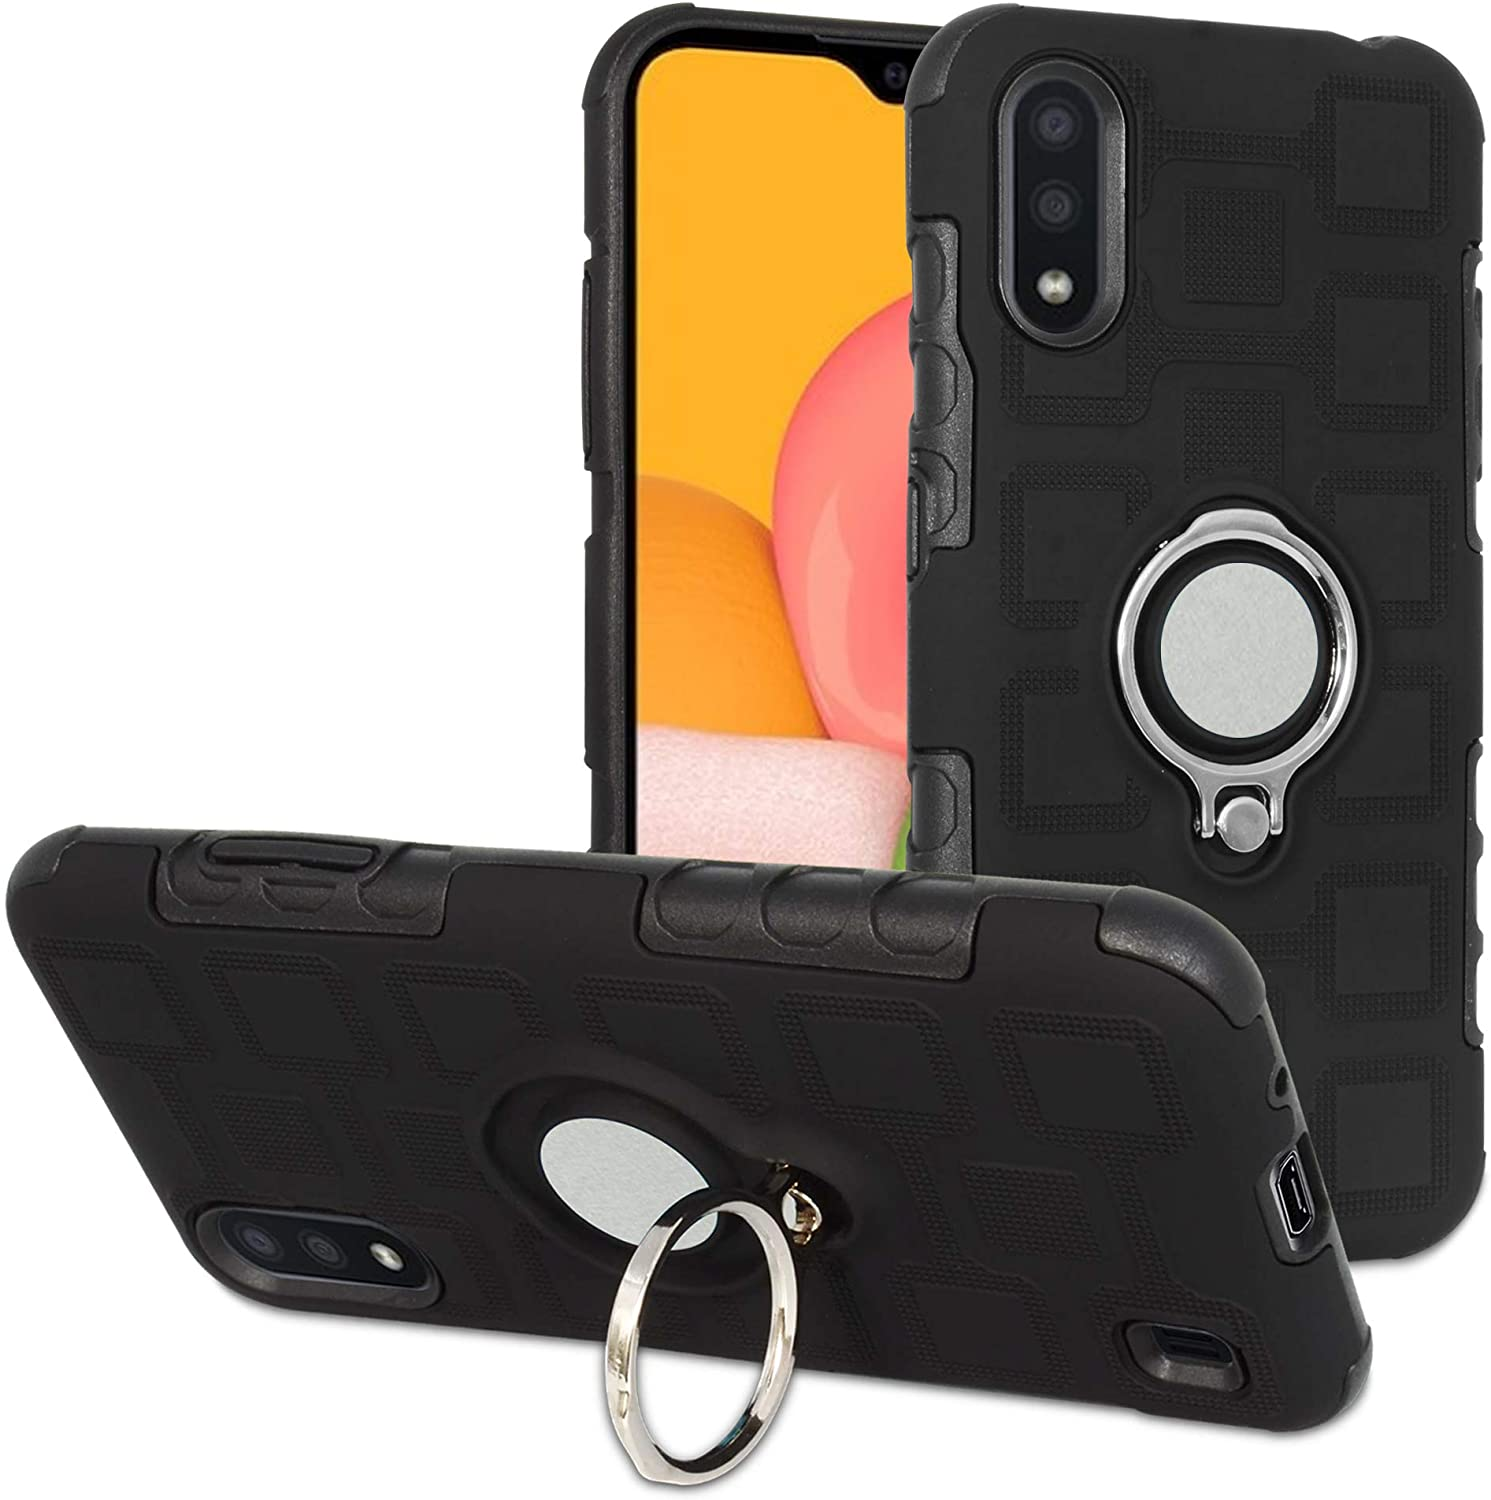 Labanema Case for Galaxy A01, Hybrid Dual Layer 360 Degree Rotation Ring Holder Kickstand Armor Slim Protective Cover for Samsung Galaxy A01 - Black